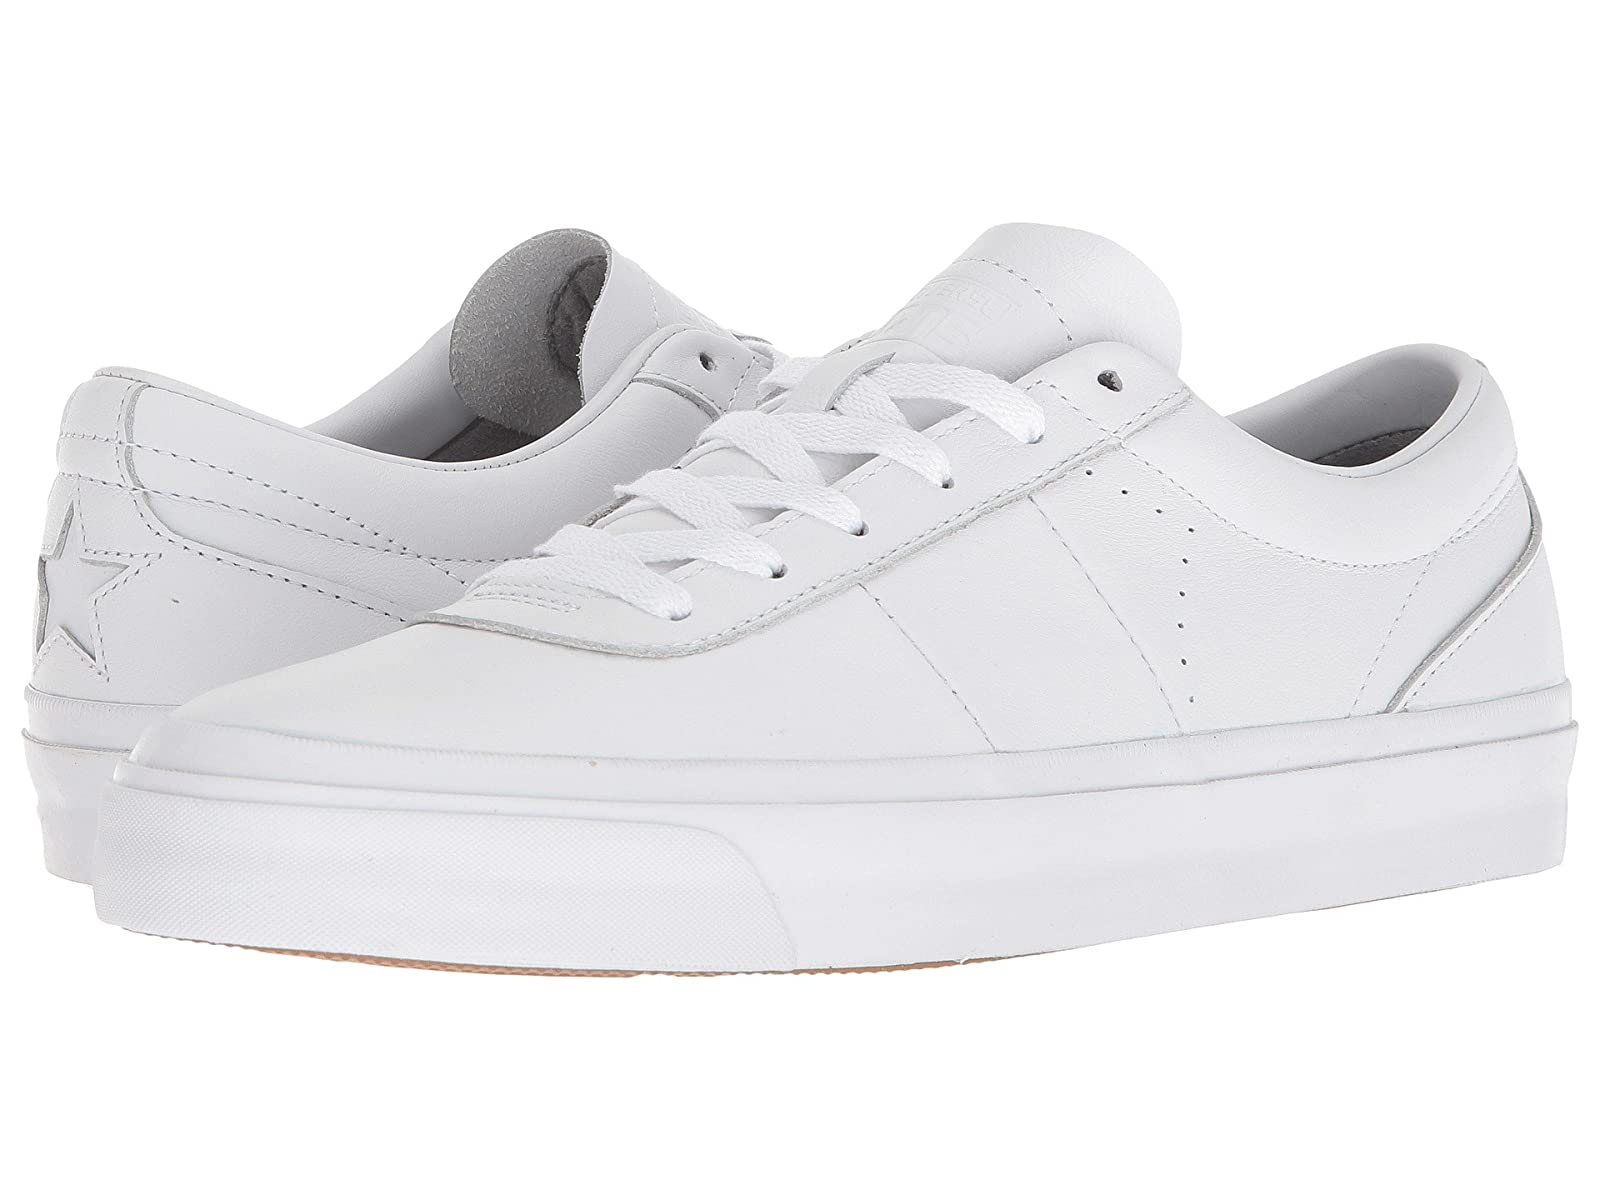 Converse Skate One Star CC Pro SkateAtmospheric grades have affordable shoes